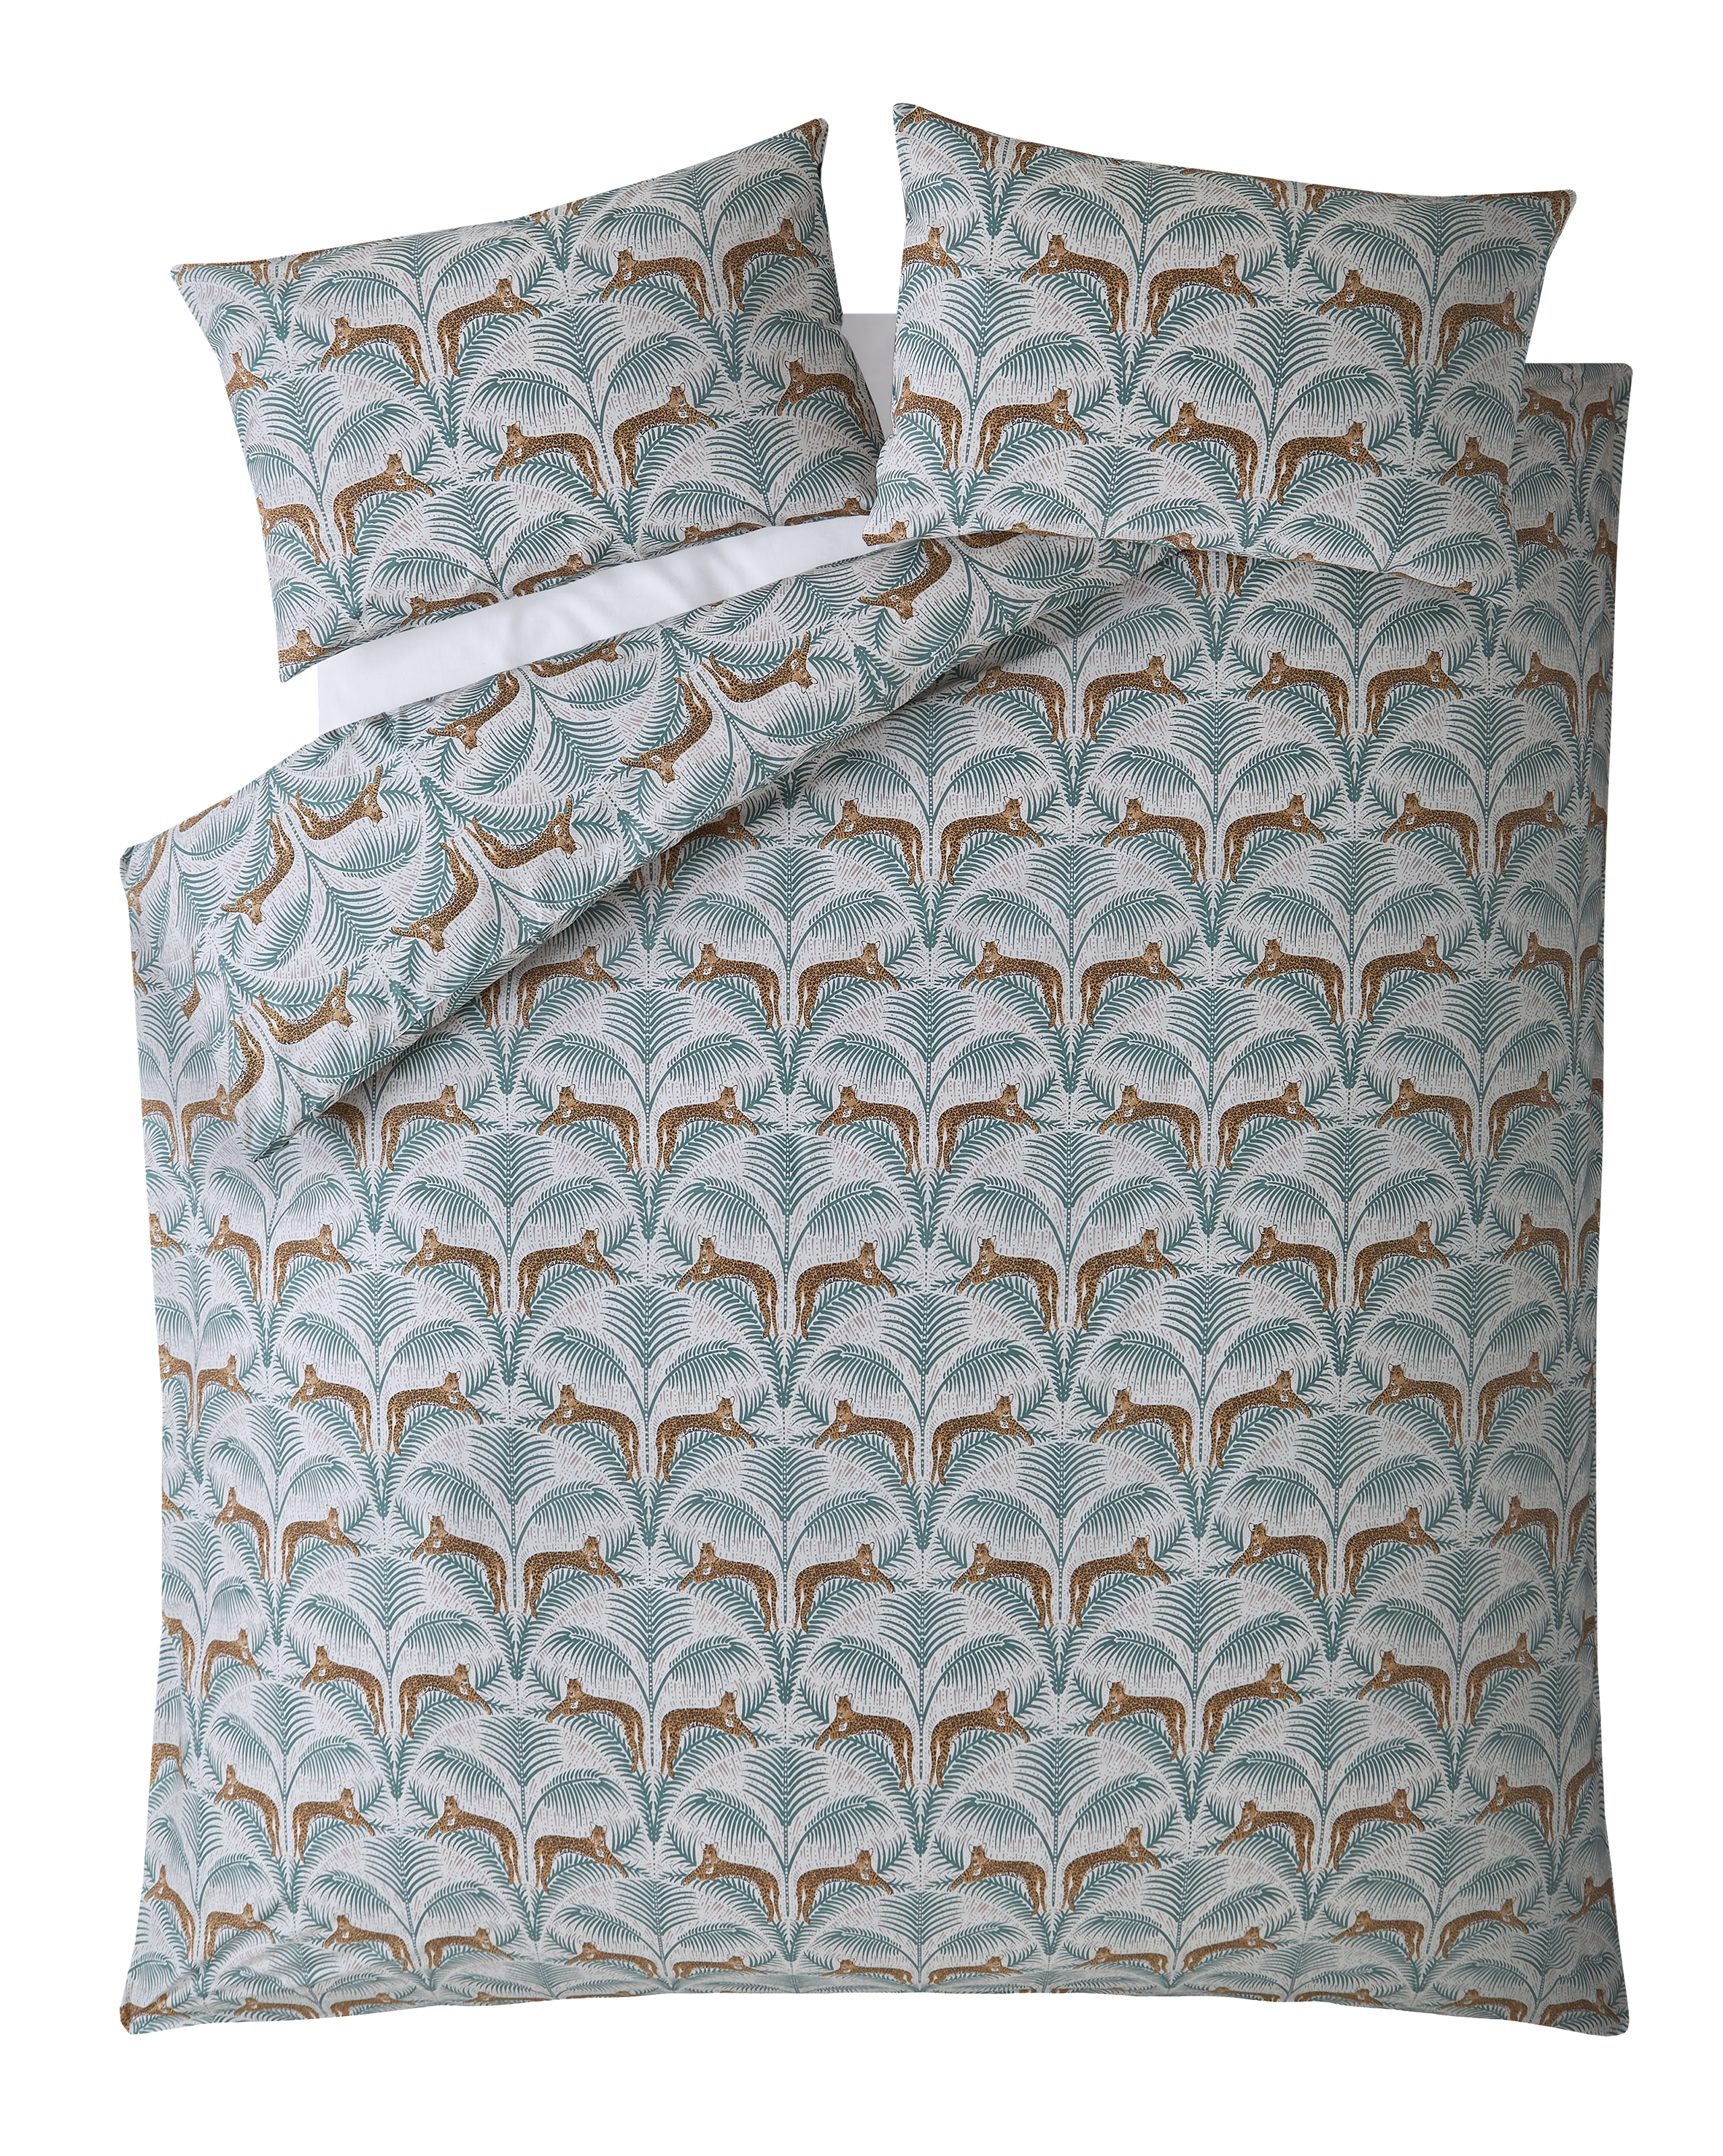 Fat Face Lounging Leopards Pillowcase